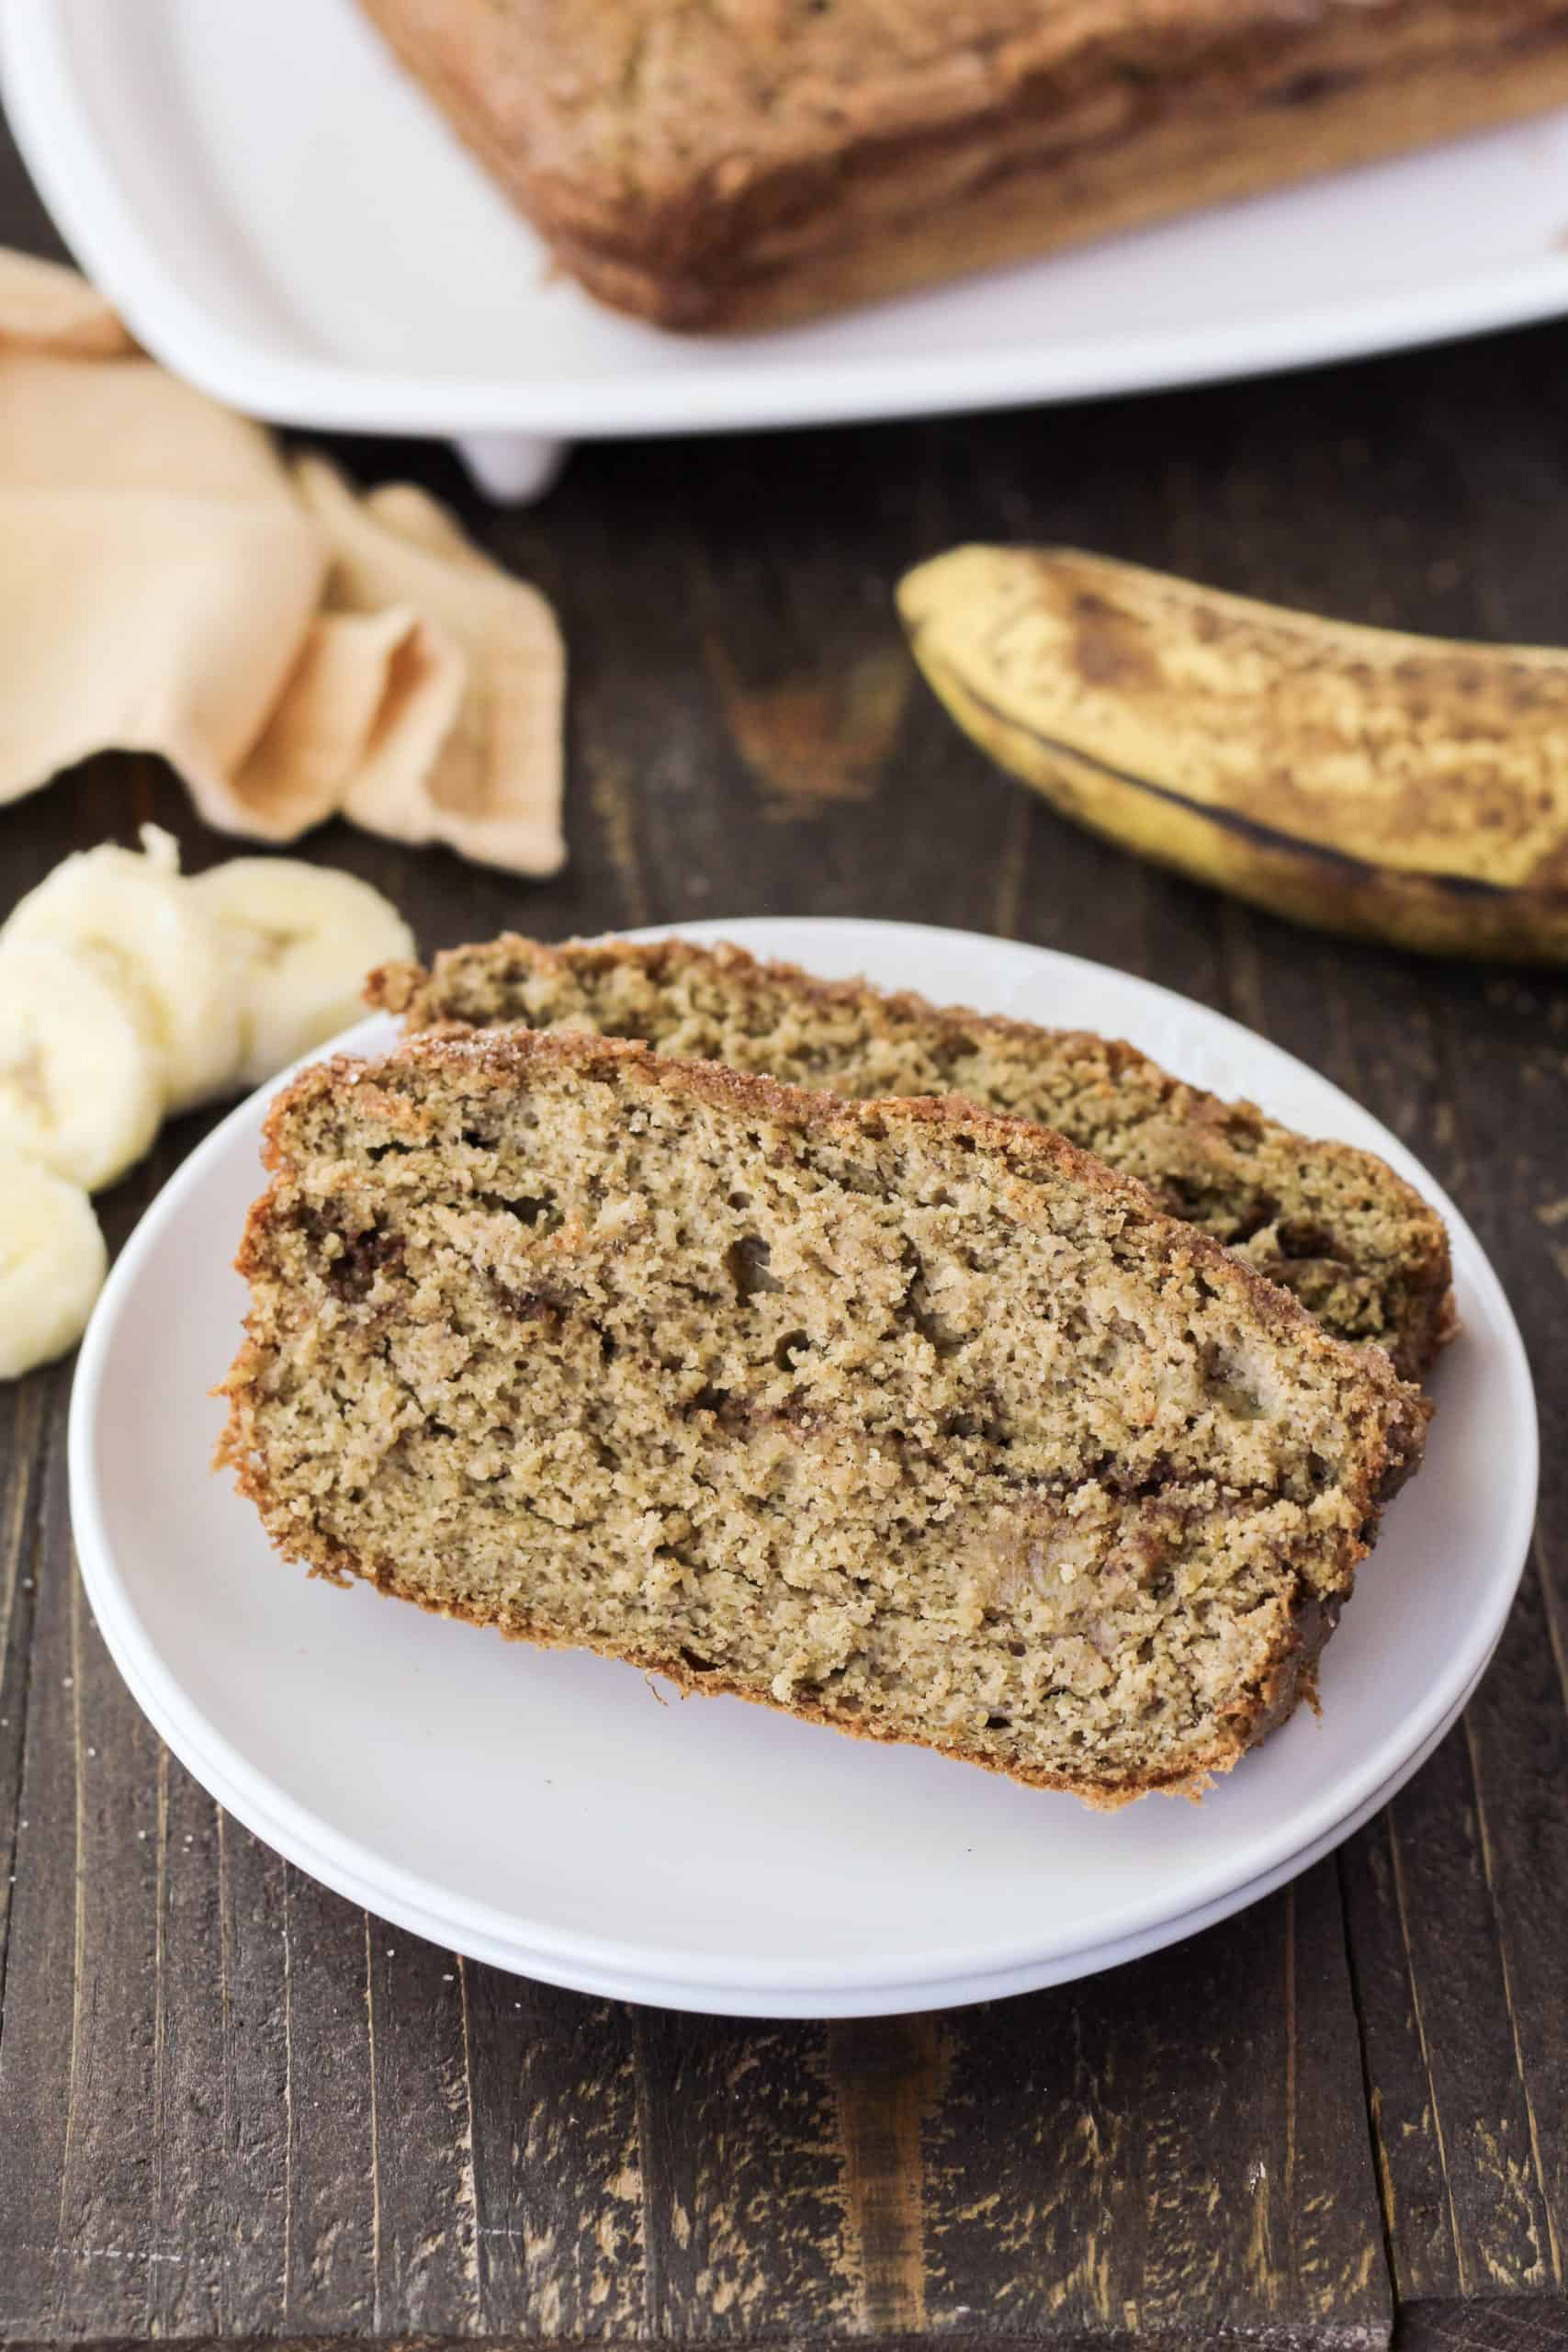 Banana bread slices on a plate